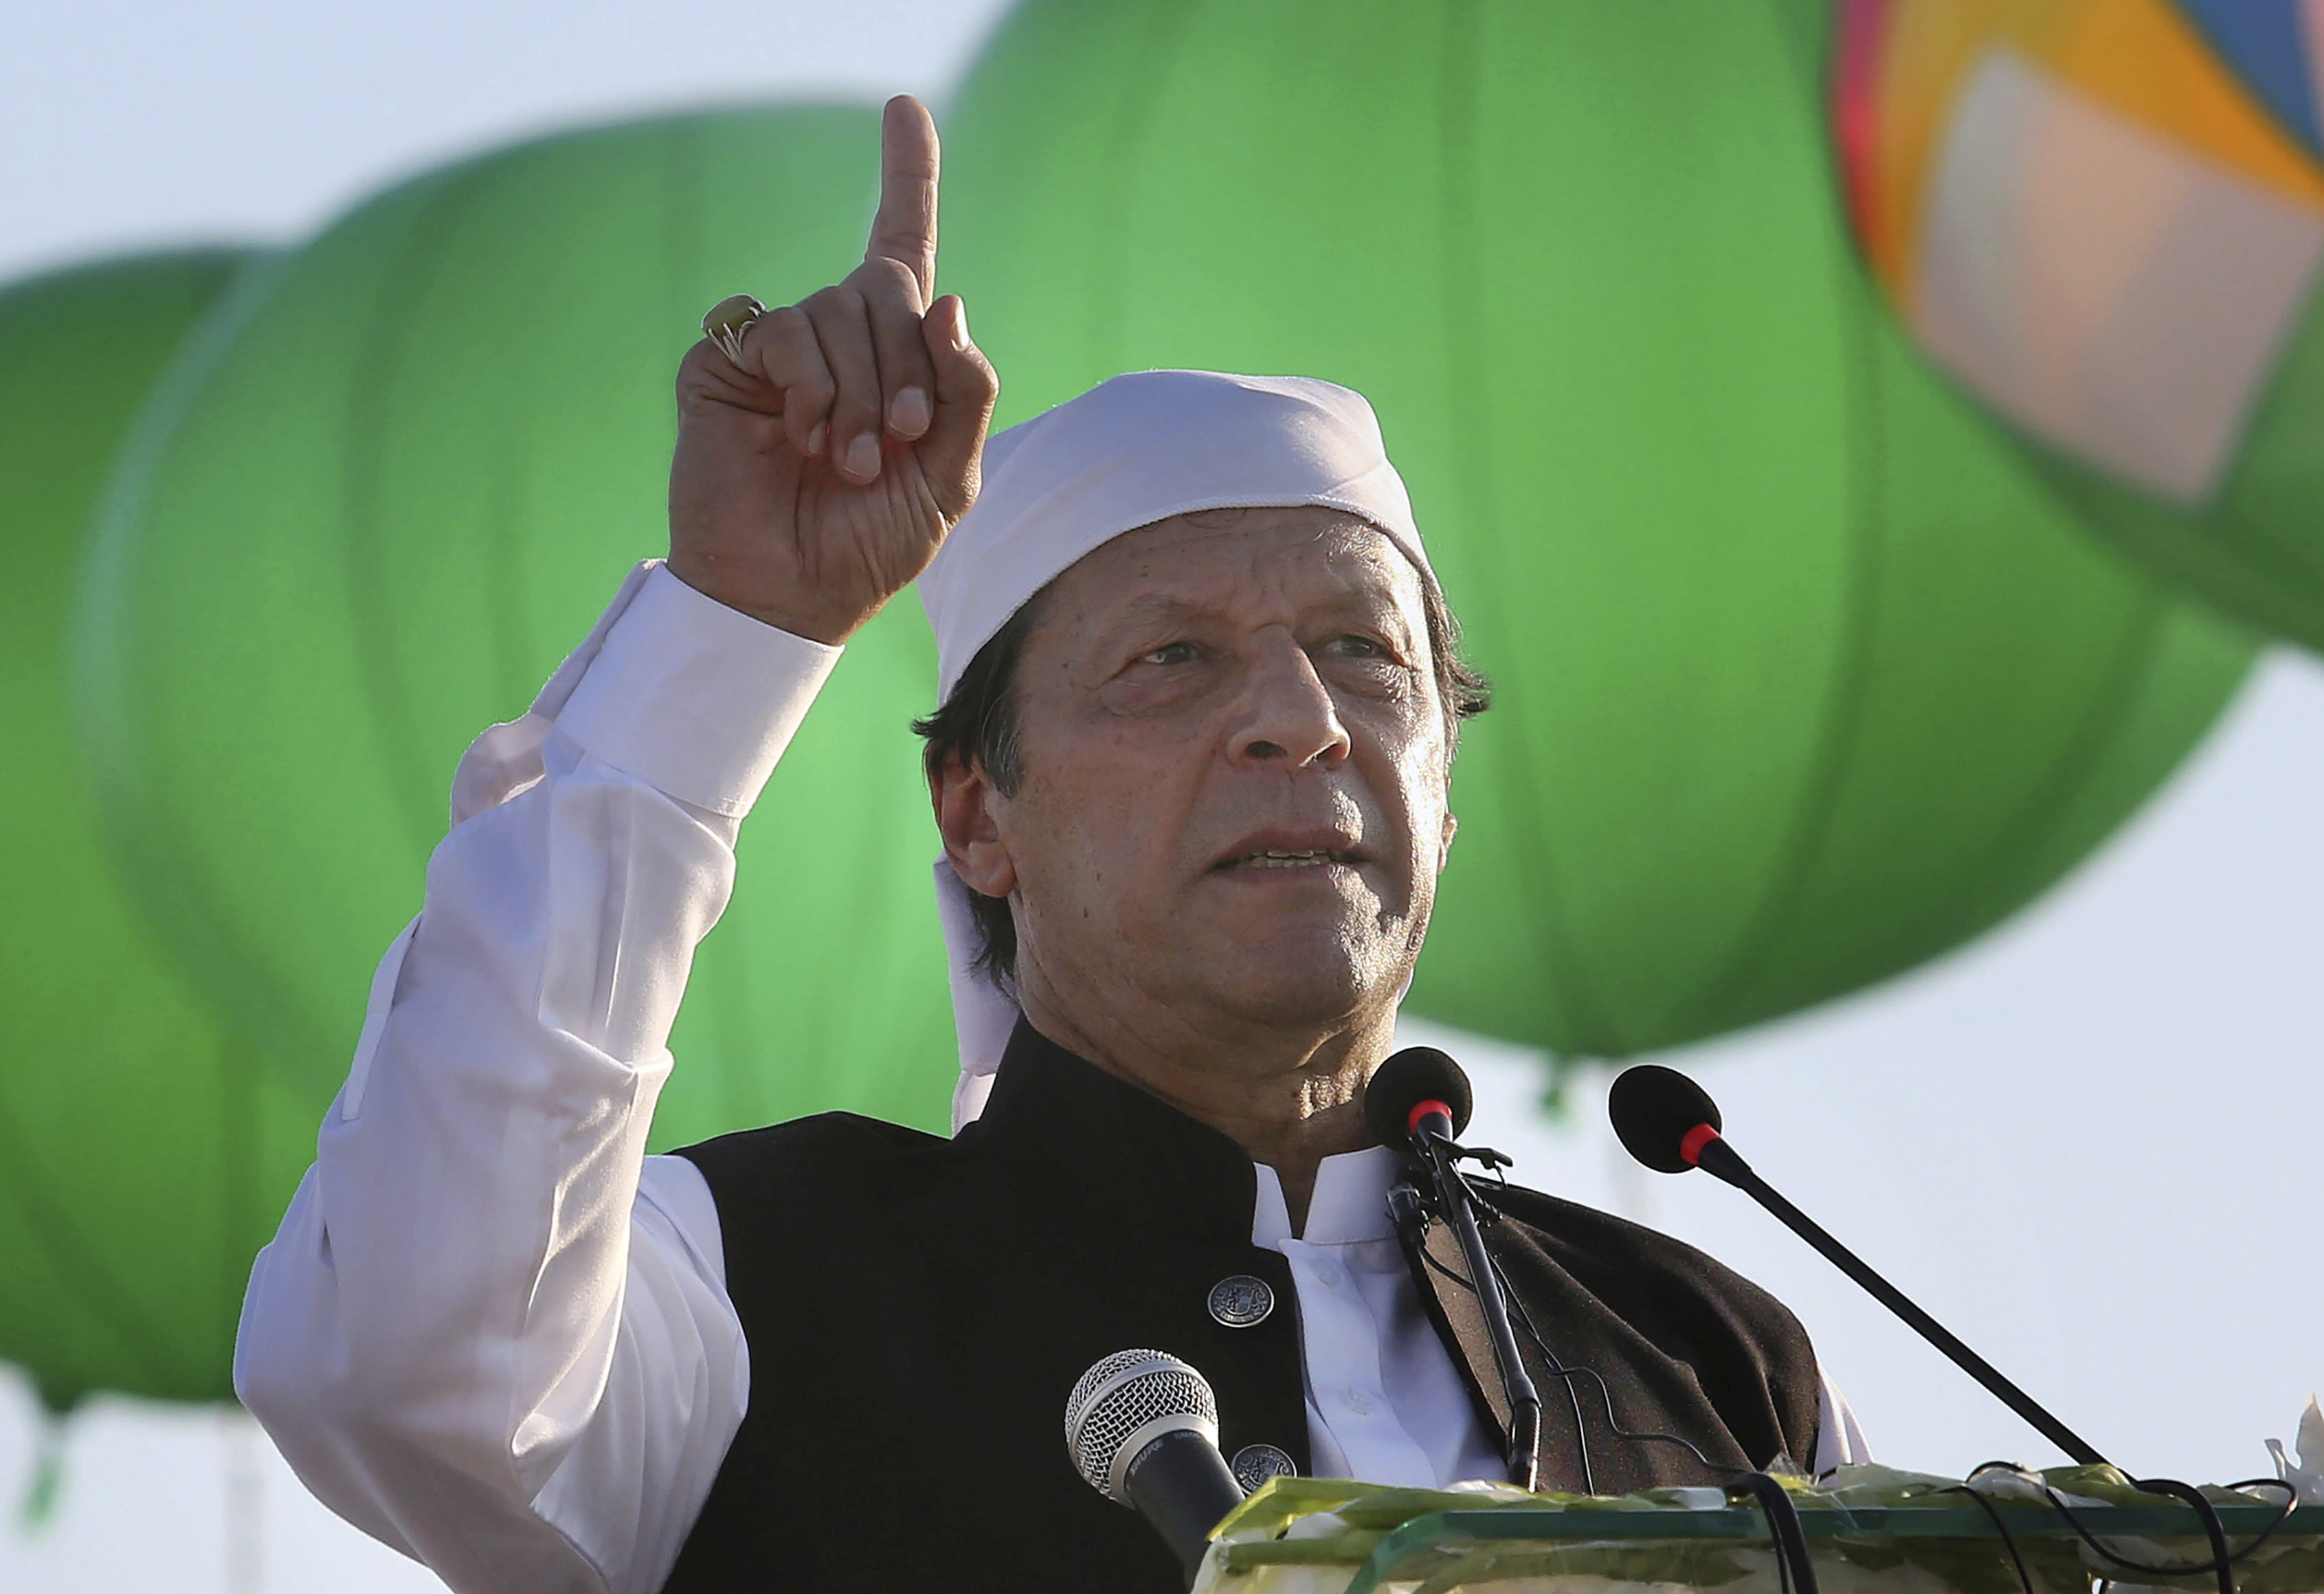 """FILE - In this Nov. 9, 2019 file photo, Pakistan Prime Minister Imran Khan addresses during the inauguration ceremony of Gurdwara Darbar Sahib in Kartarpur, Pakistan. Khan accused the United States on Thursday, June 25, 2020, of having """"martyred"""" al-Qaida leader and the mastermind of the 9/11 attacks, Osama bin Laden. (AP Photo/K.M. Chaudary,file)"""